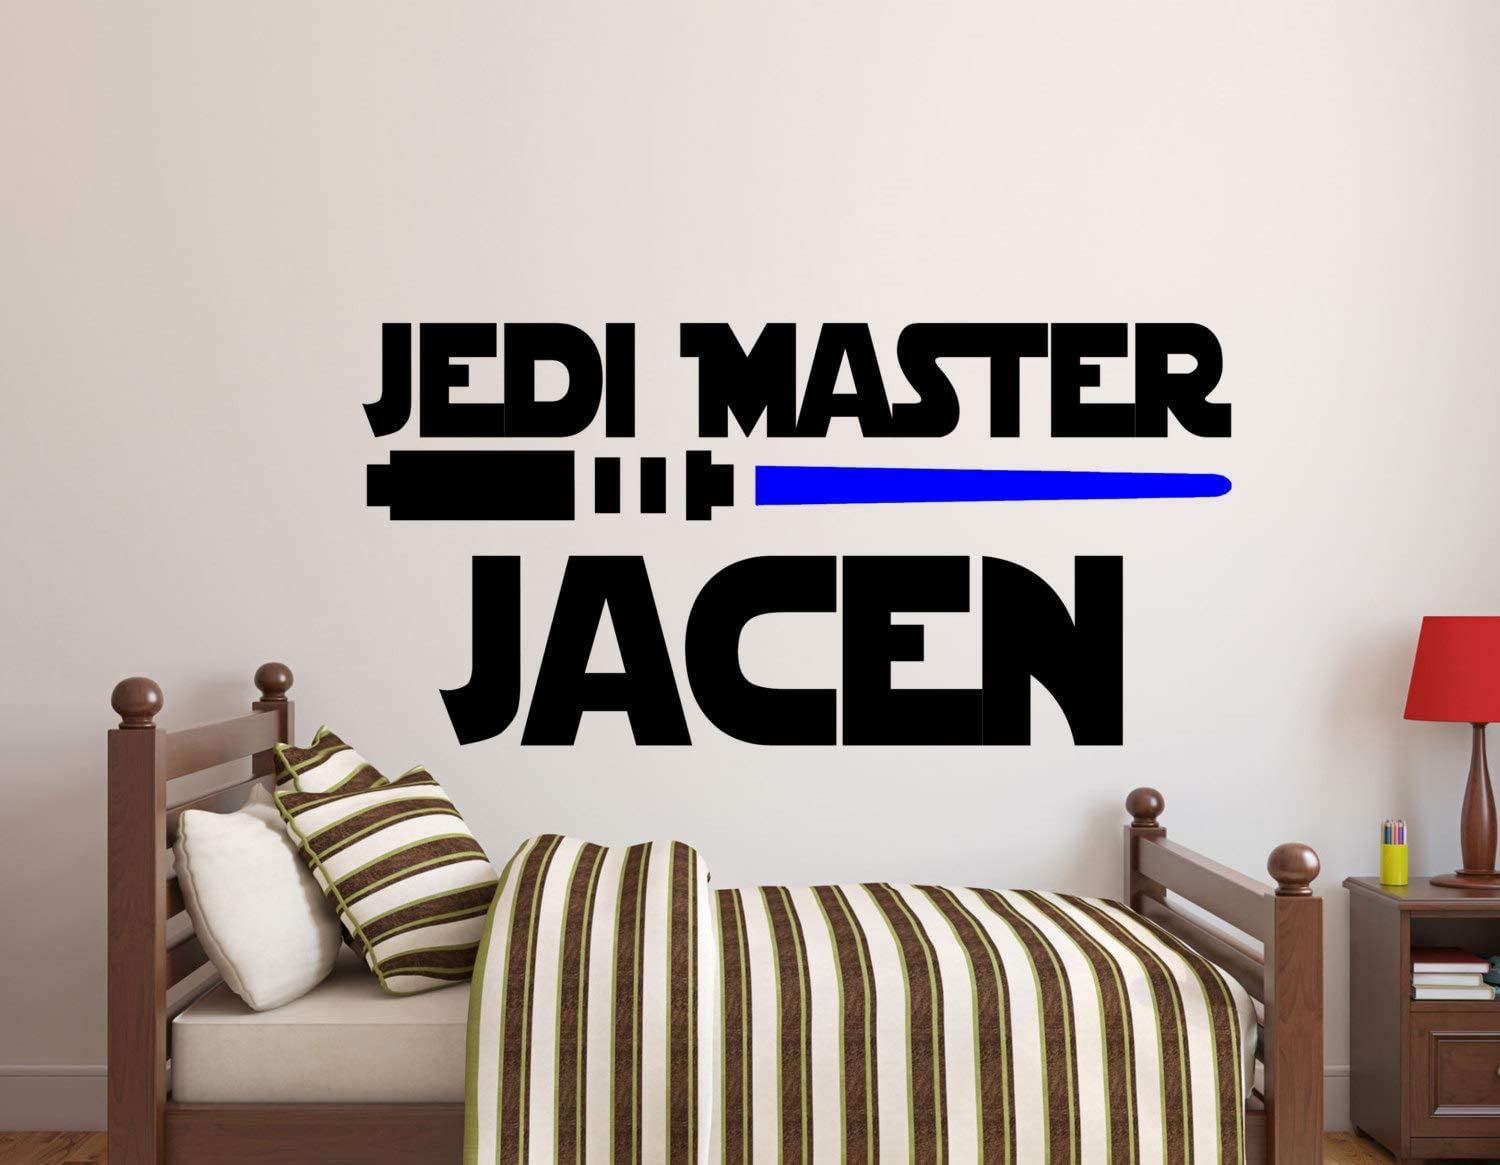 Star Wars Collection Wall Stickers Removable Kids Boys Vinyl Decal Nursery Decor